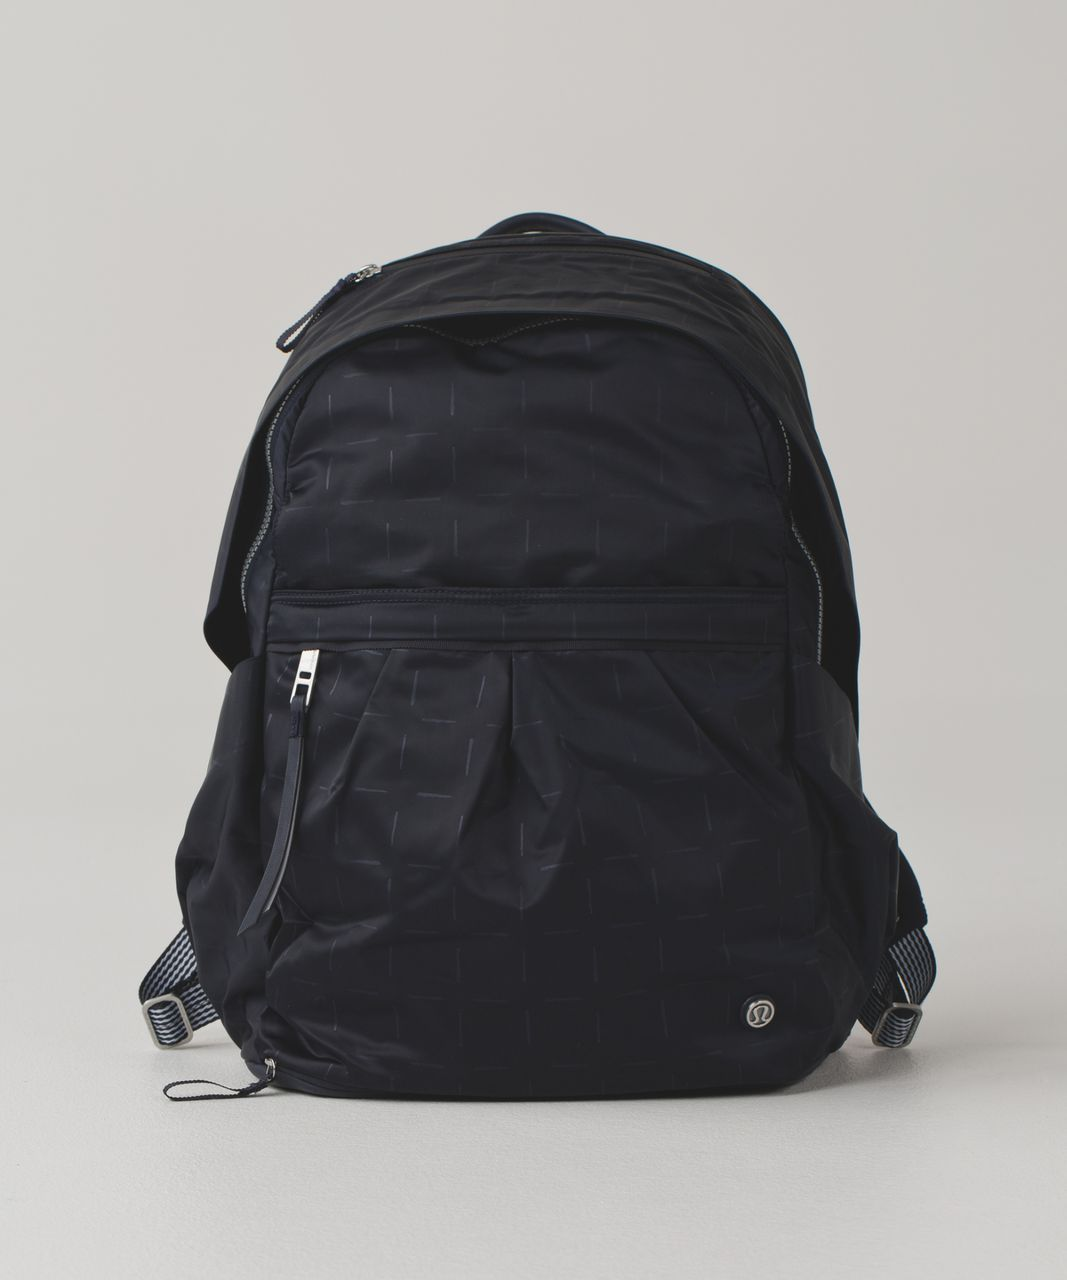 Lululemon Pack It Up Backpack - Tikki Tac Embossed Naval Blue